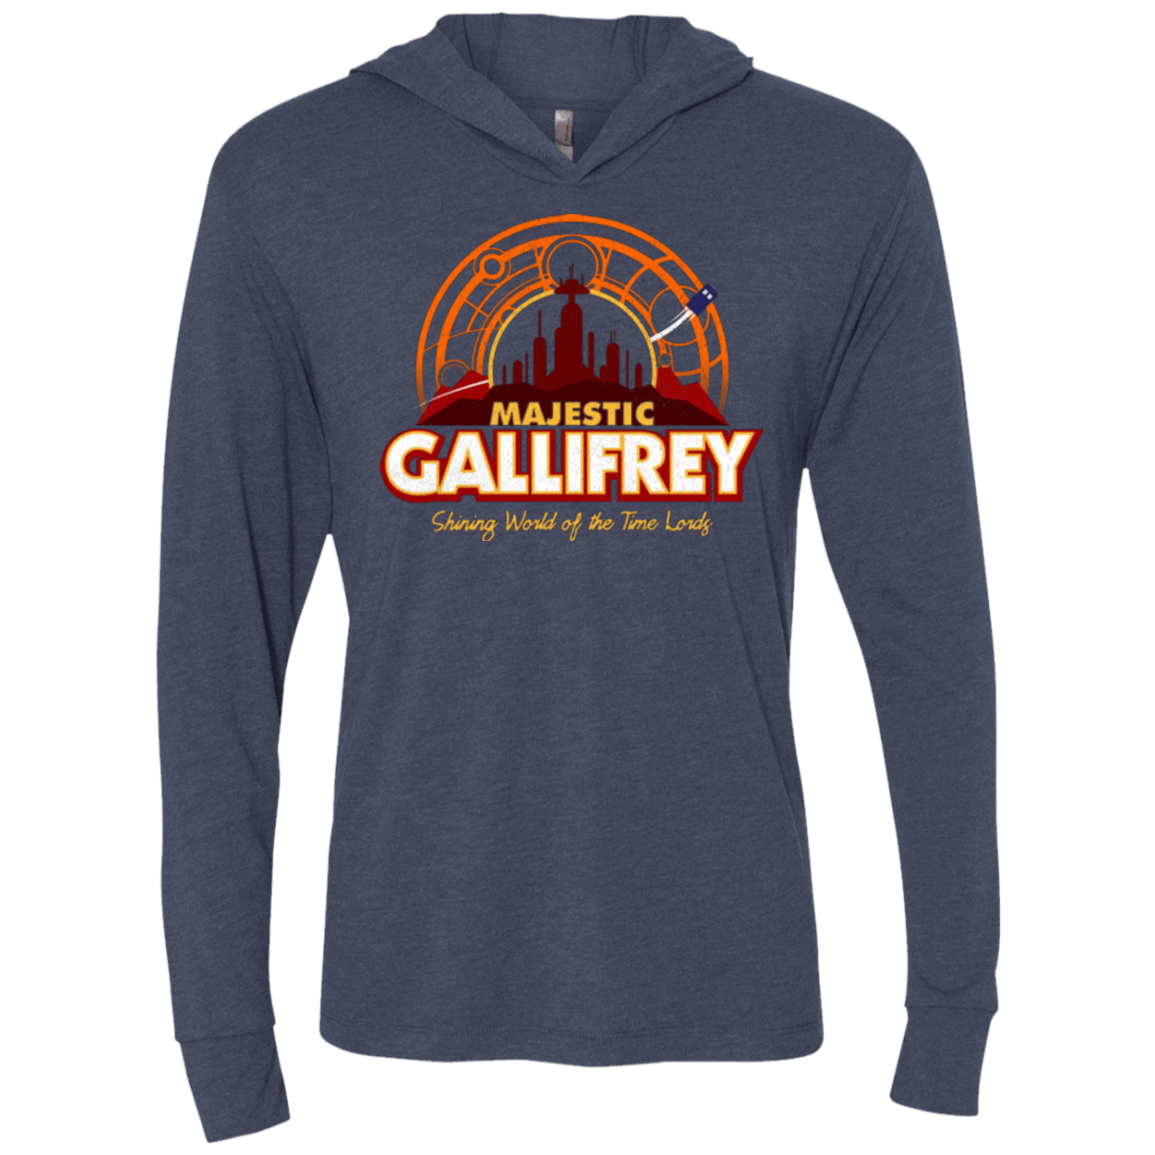 T-Shirts Vintage Navy / X-Small Majestic Gallifrey Triblend Long Sleeve Hoodie Tee